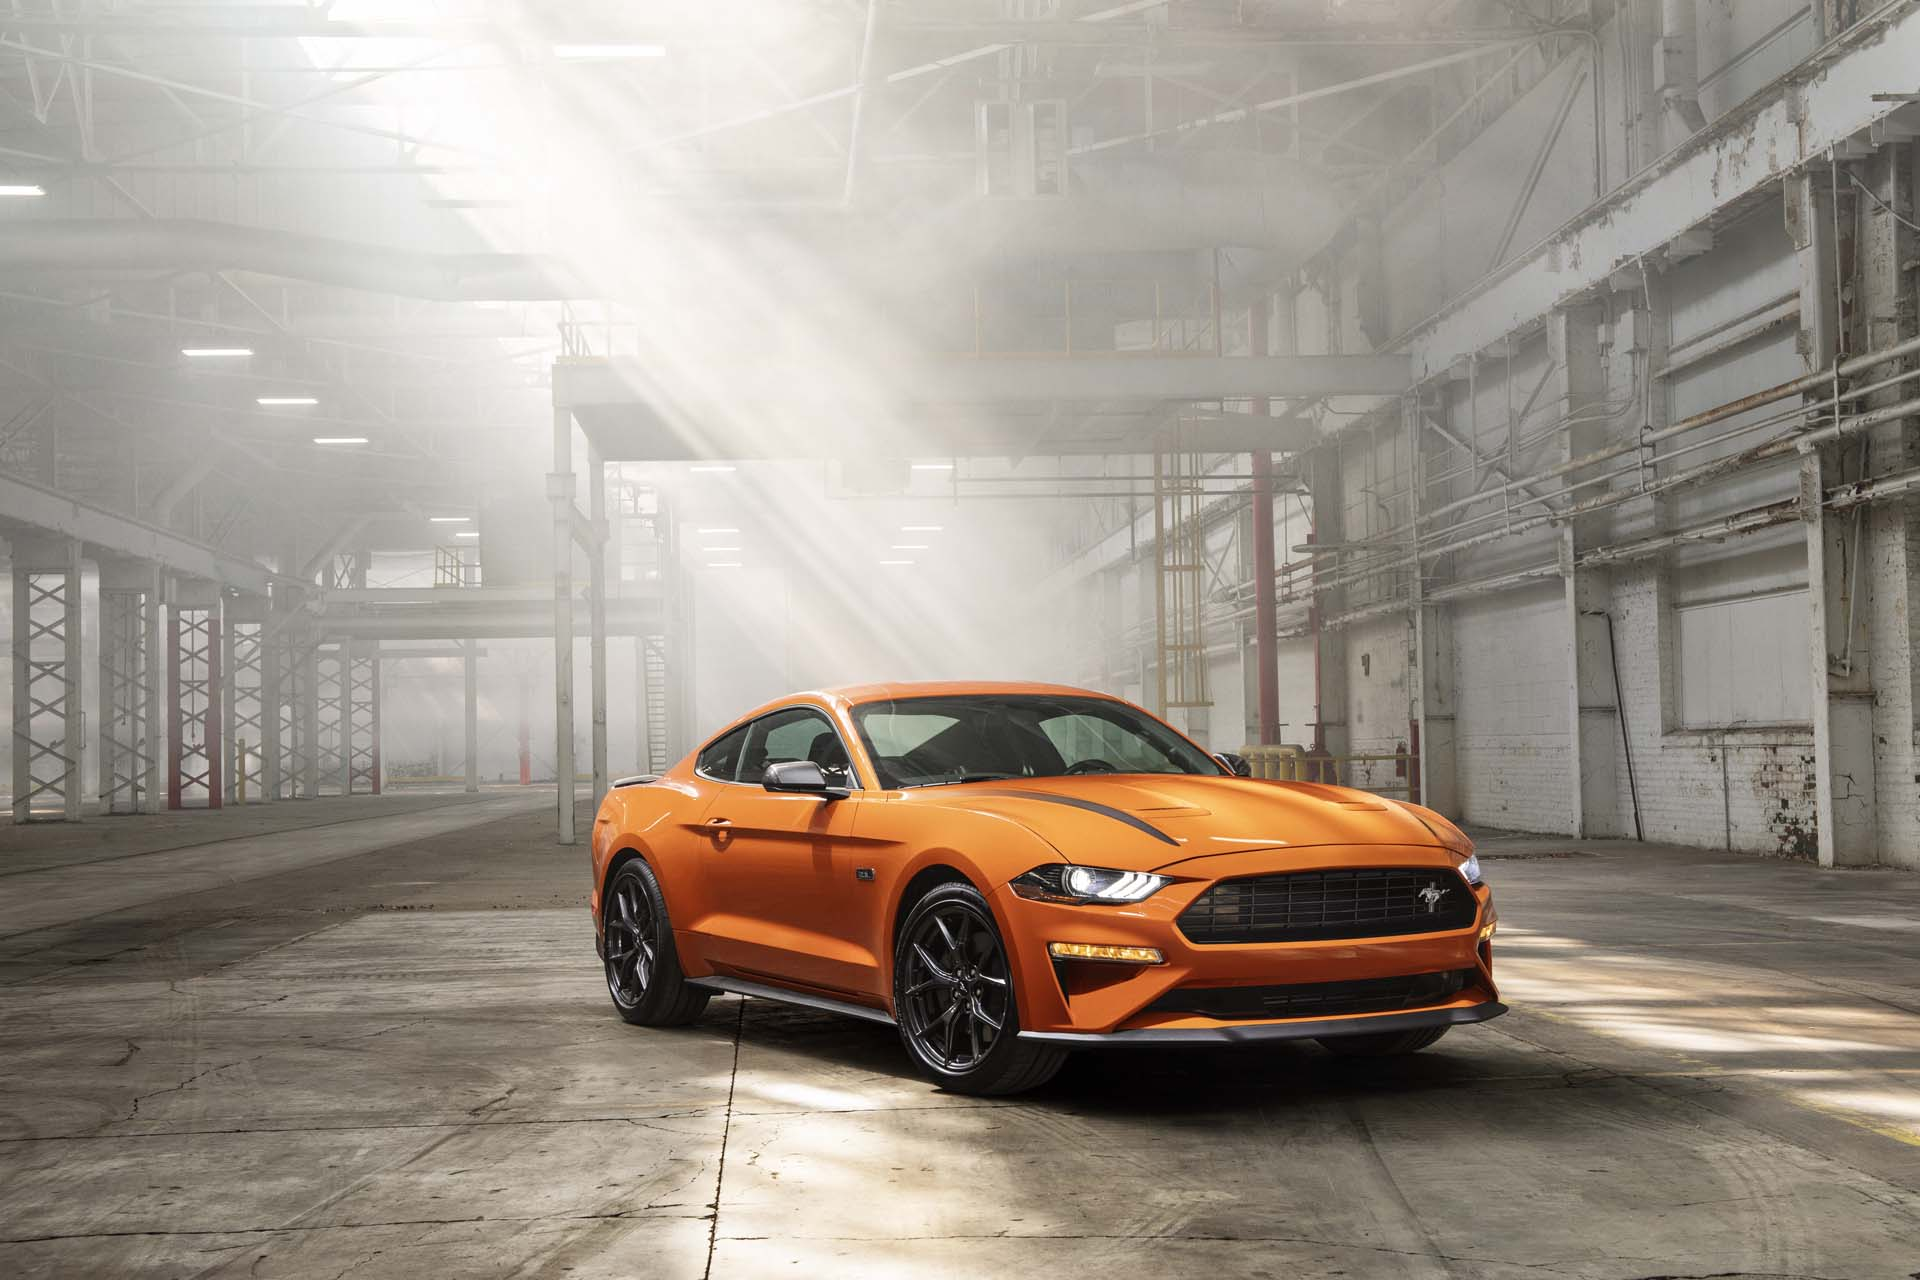 2020 ford mustang ecoboost gets slew of upgrades from ford performance